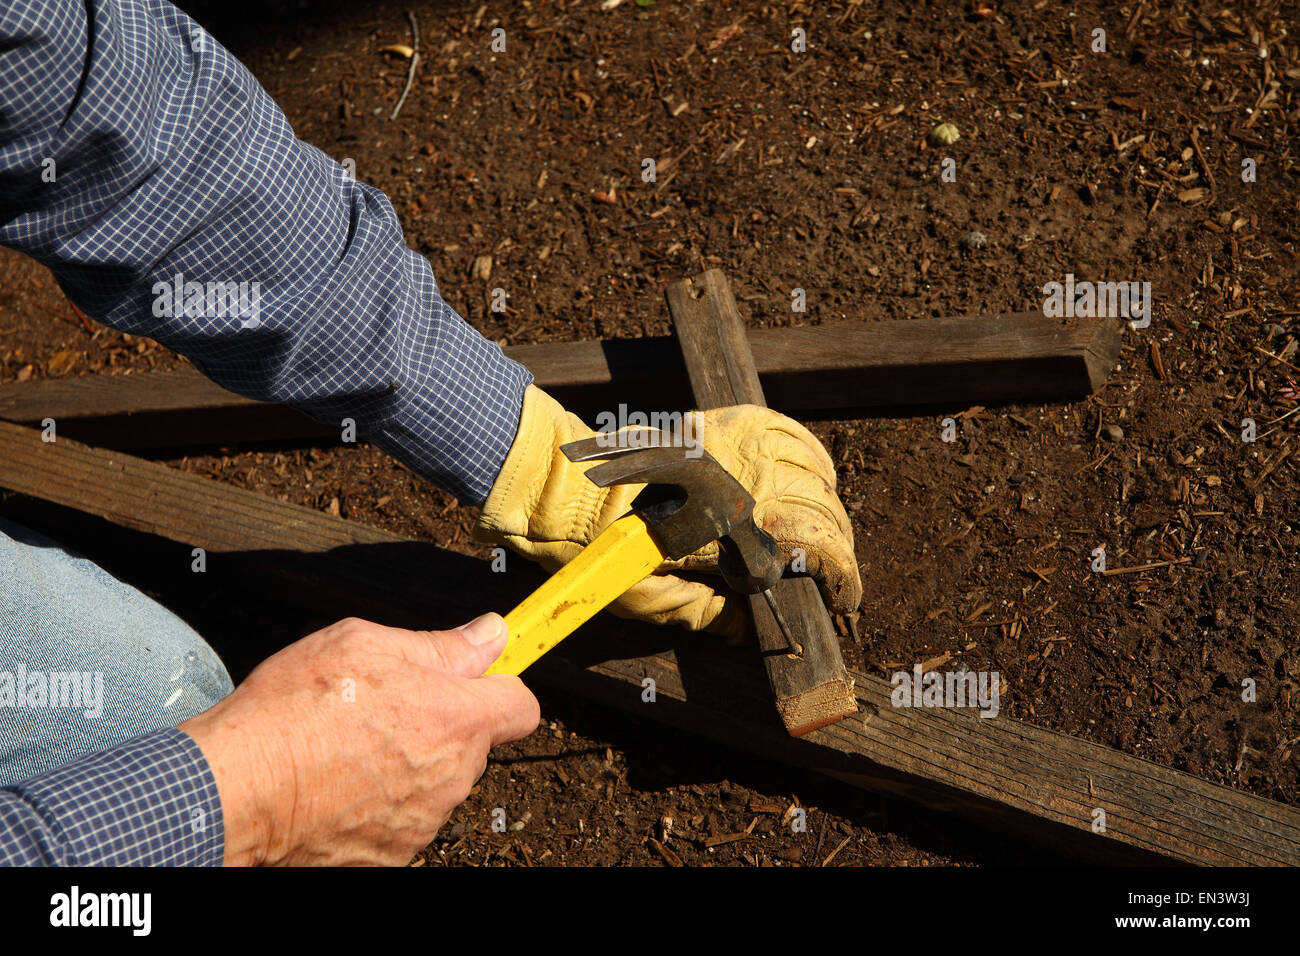 A homeowner constructs a sturdy trellis for his garden. - Stock Image